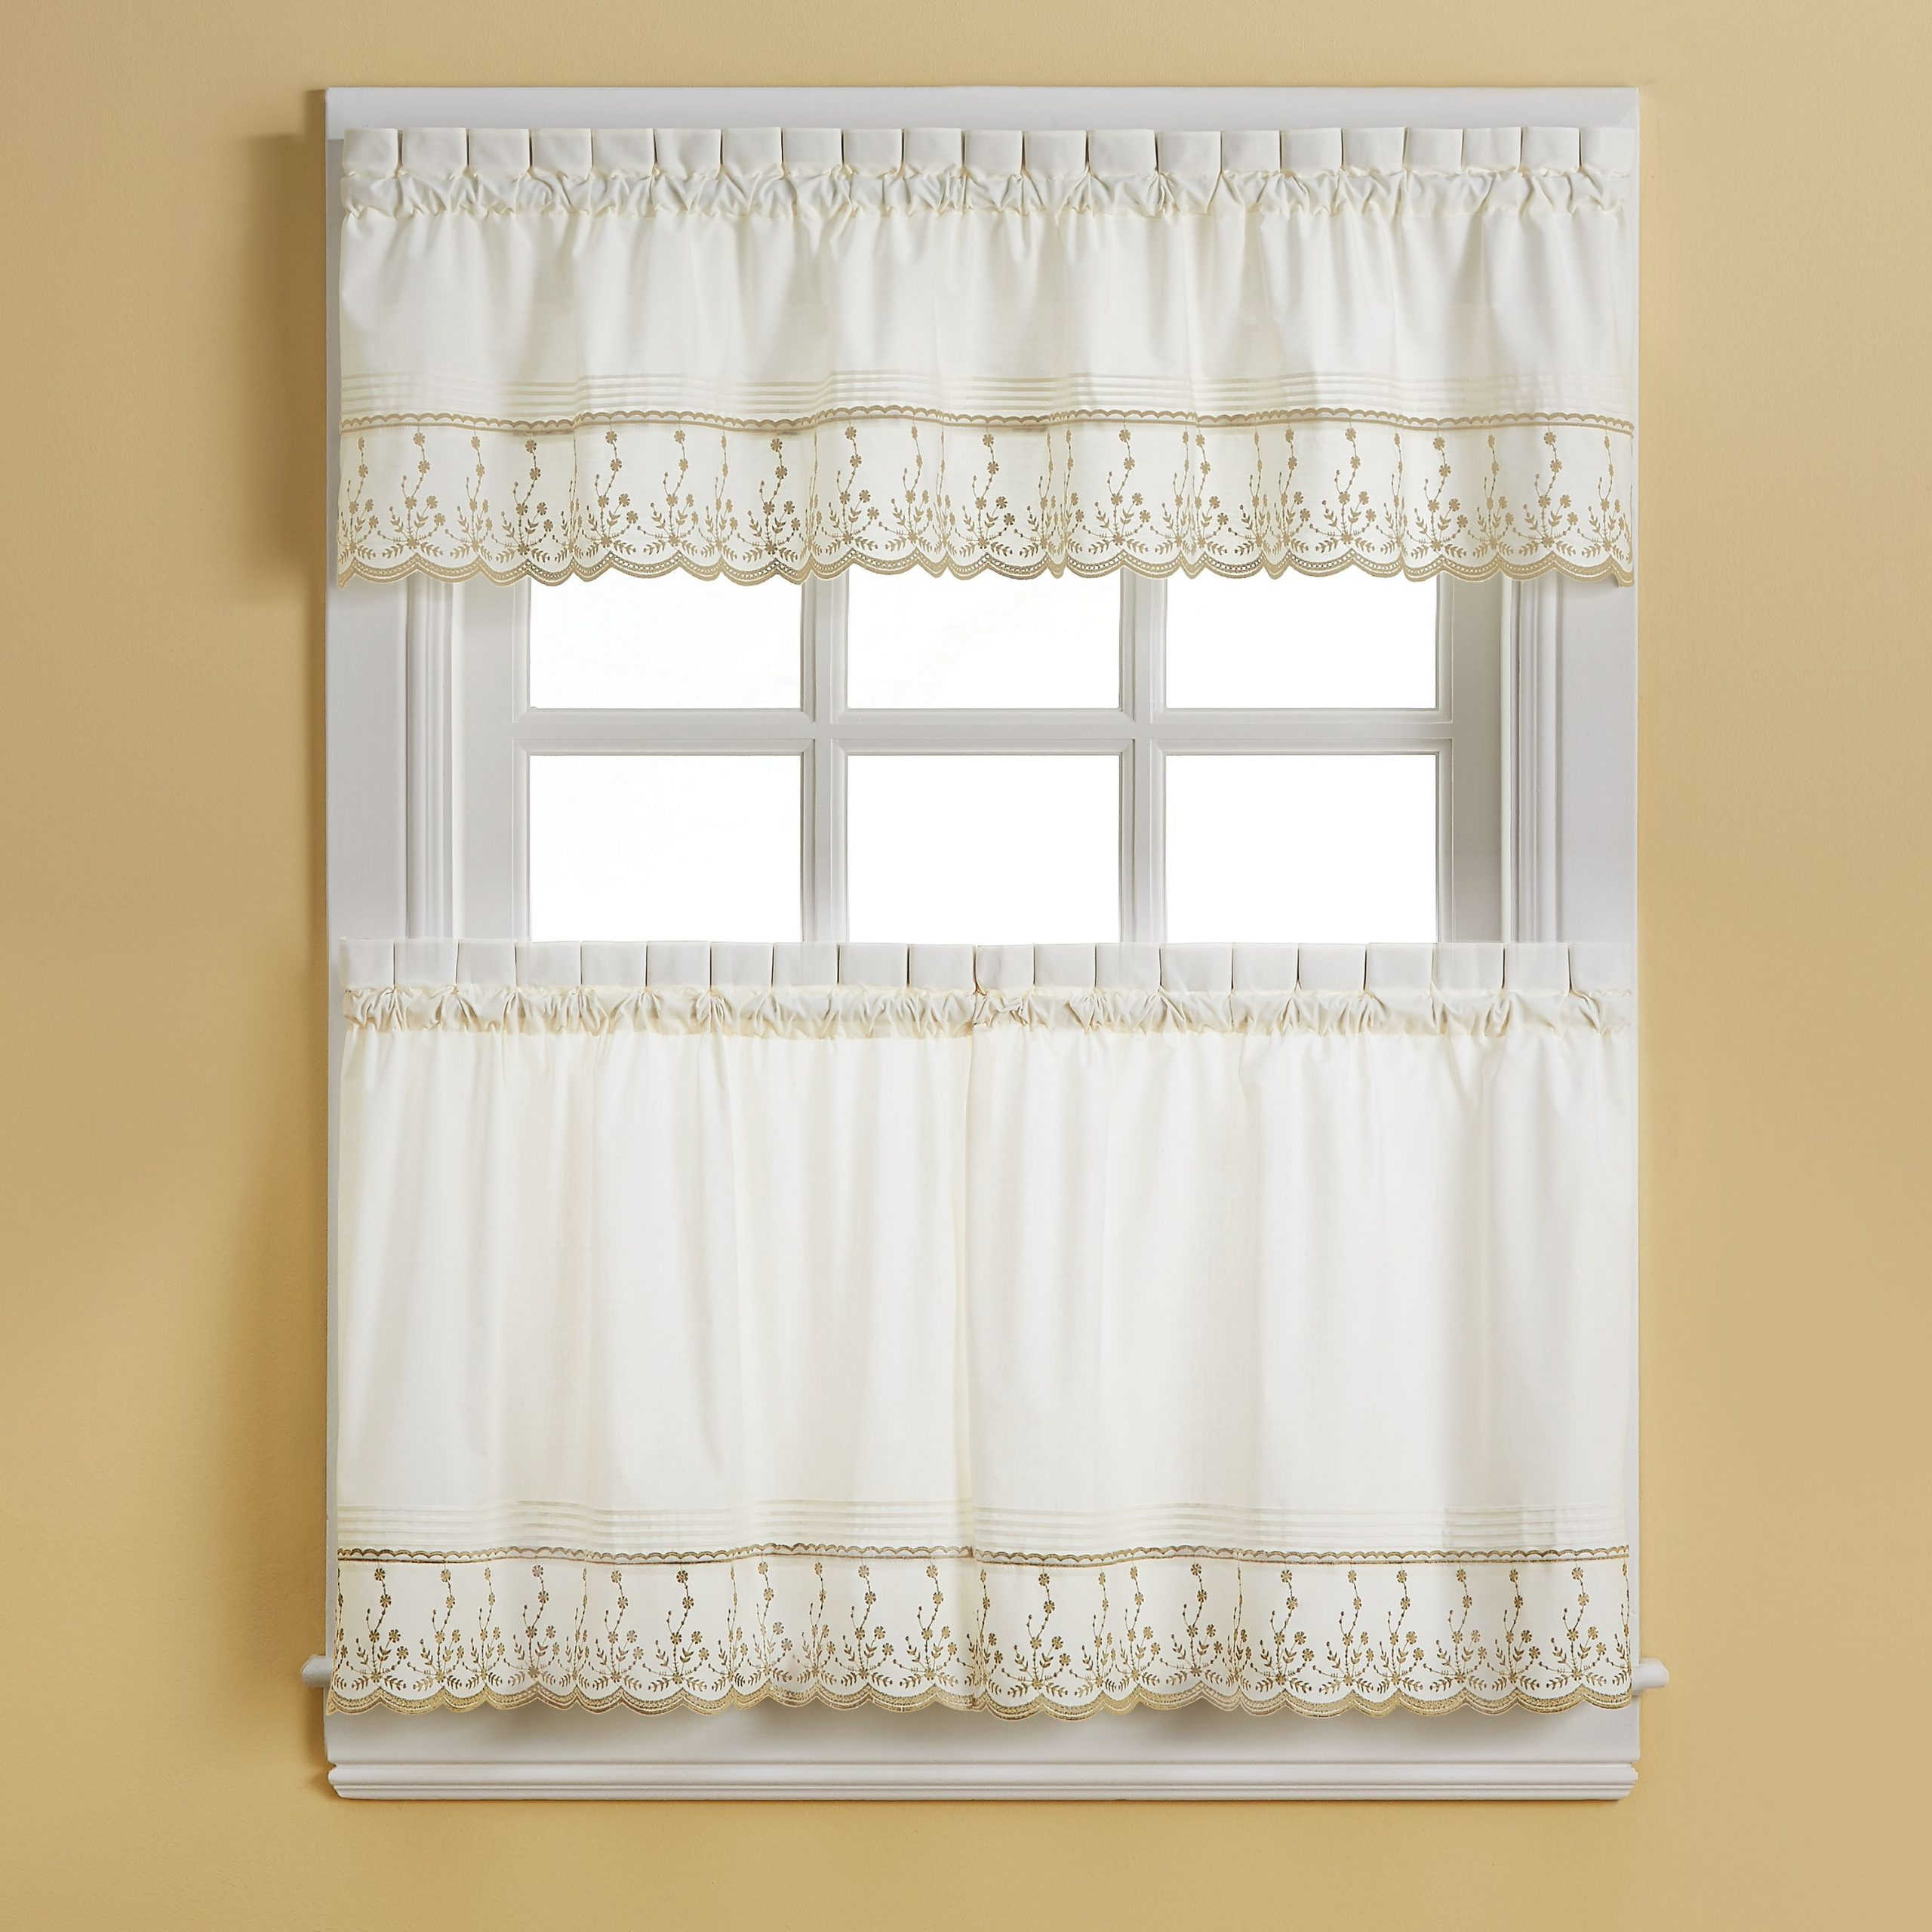 Pinterest For French Vanilla Country Style Curtain Parts With White Daisy Lace Accent (View 9 of 20)